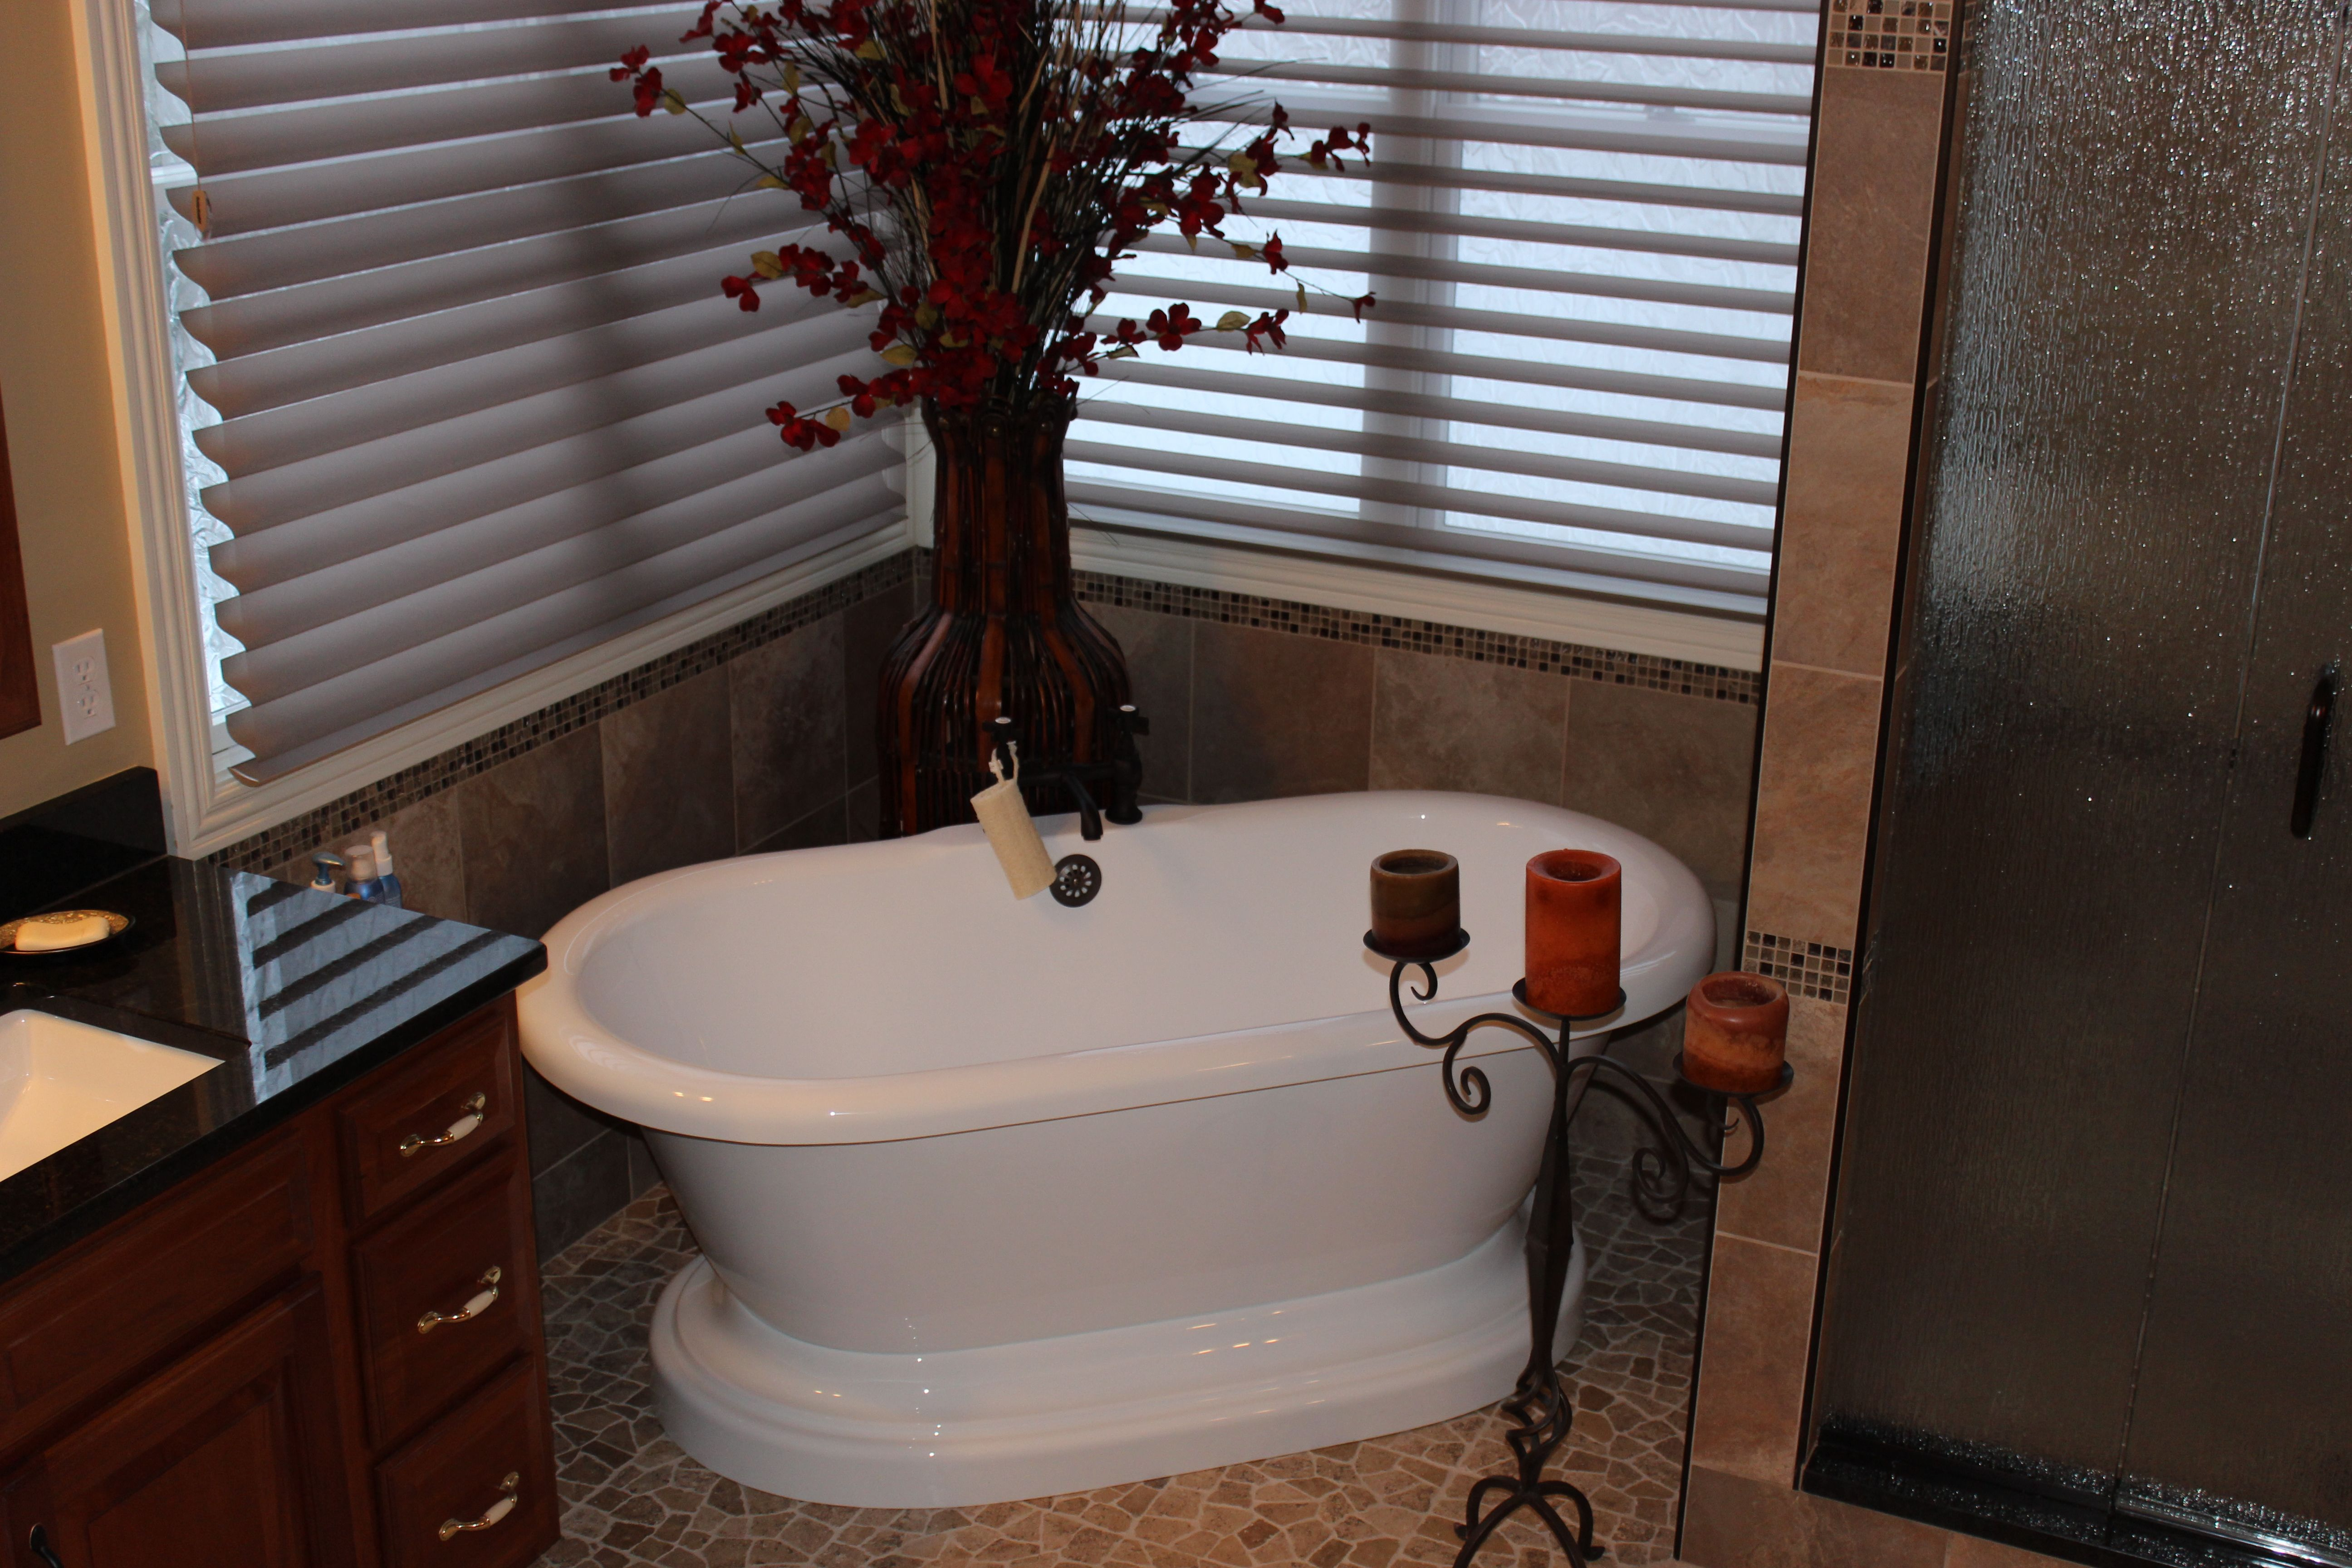 After removal of the existing cast iron tub we installed